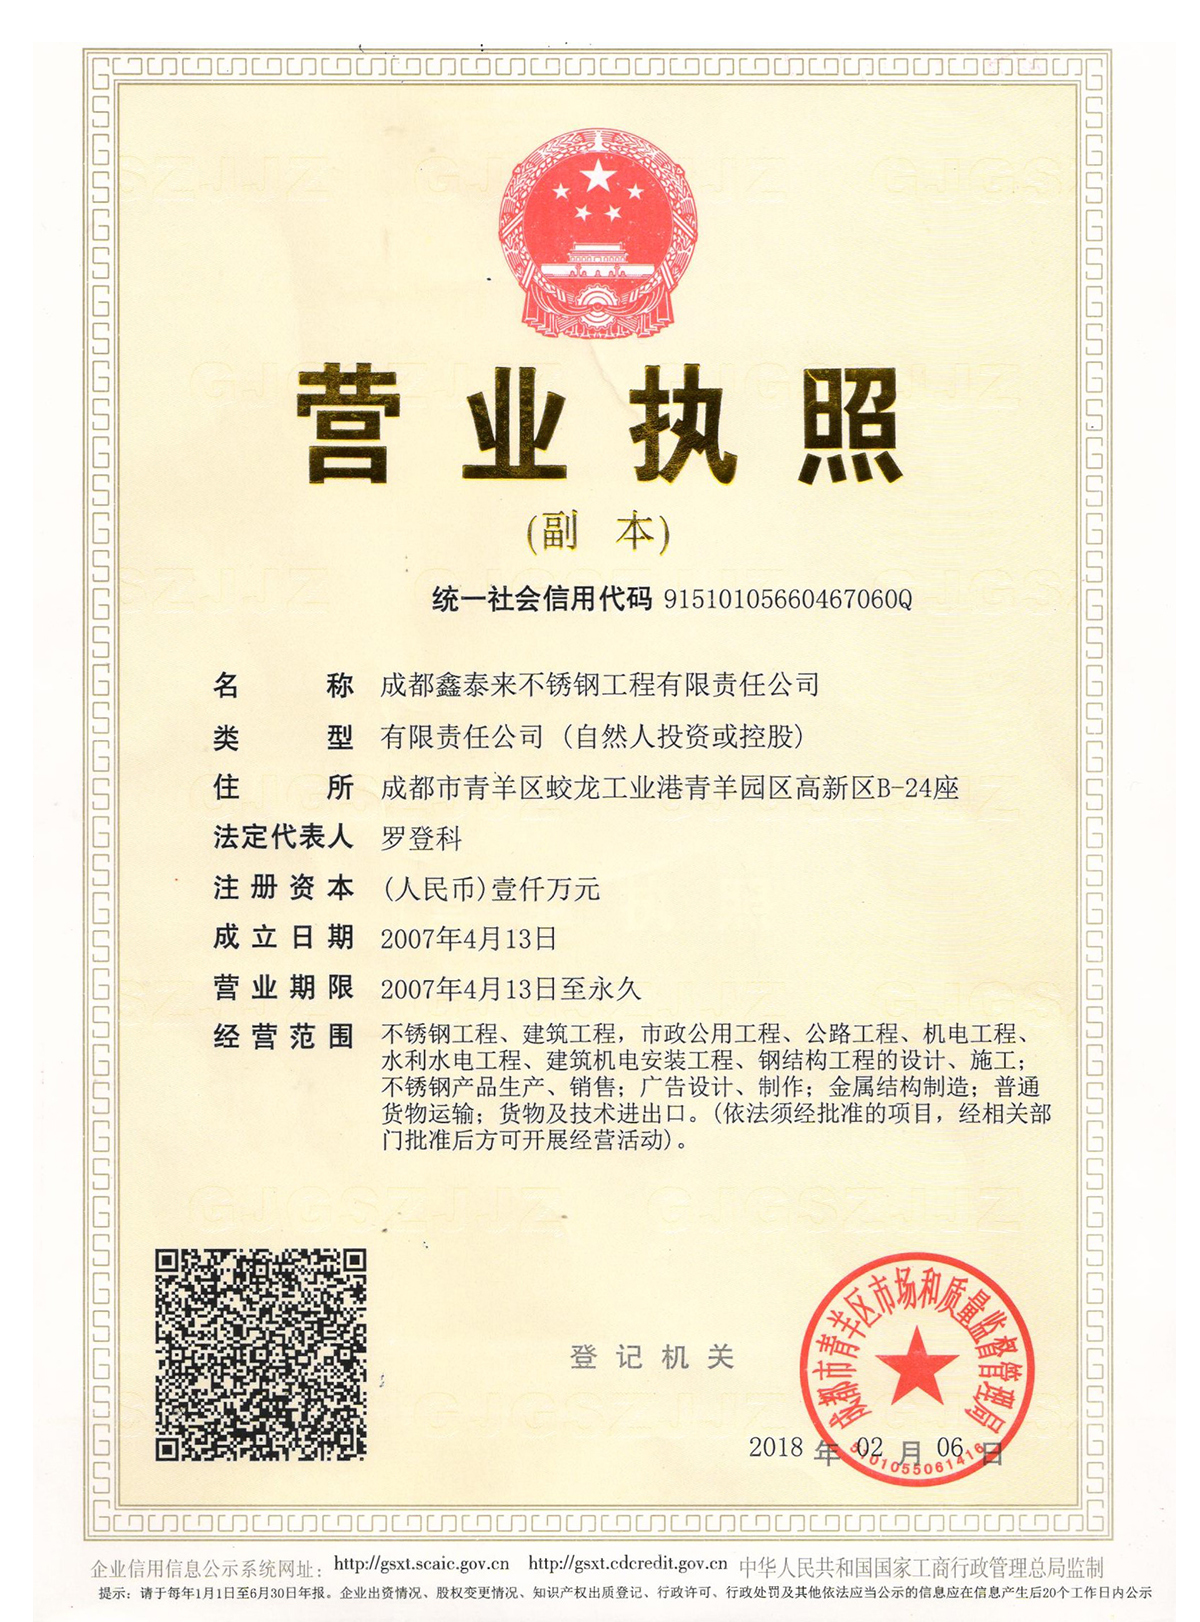 The registered capital of the company rose to 10 million yuan